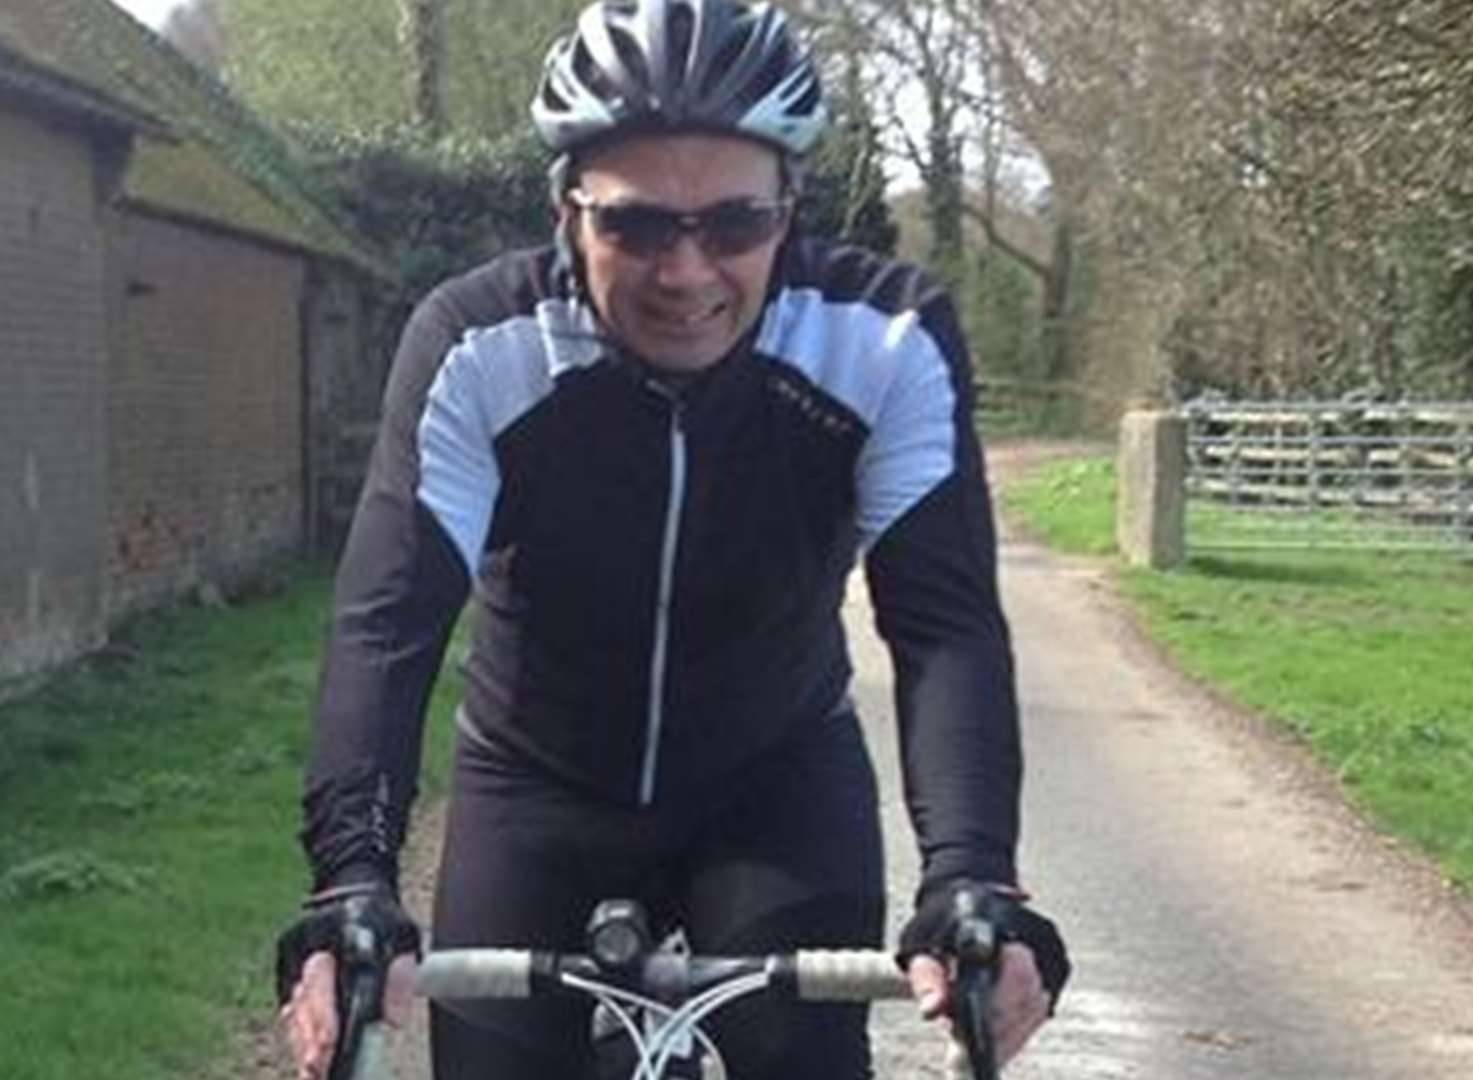 1,000-mile bike ride set to raise £100,000 for children's charities